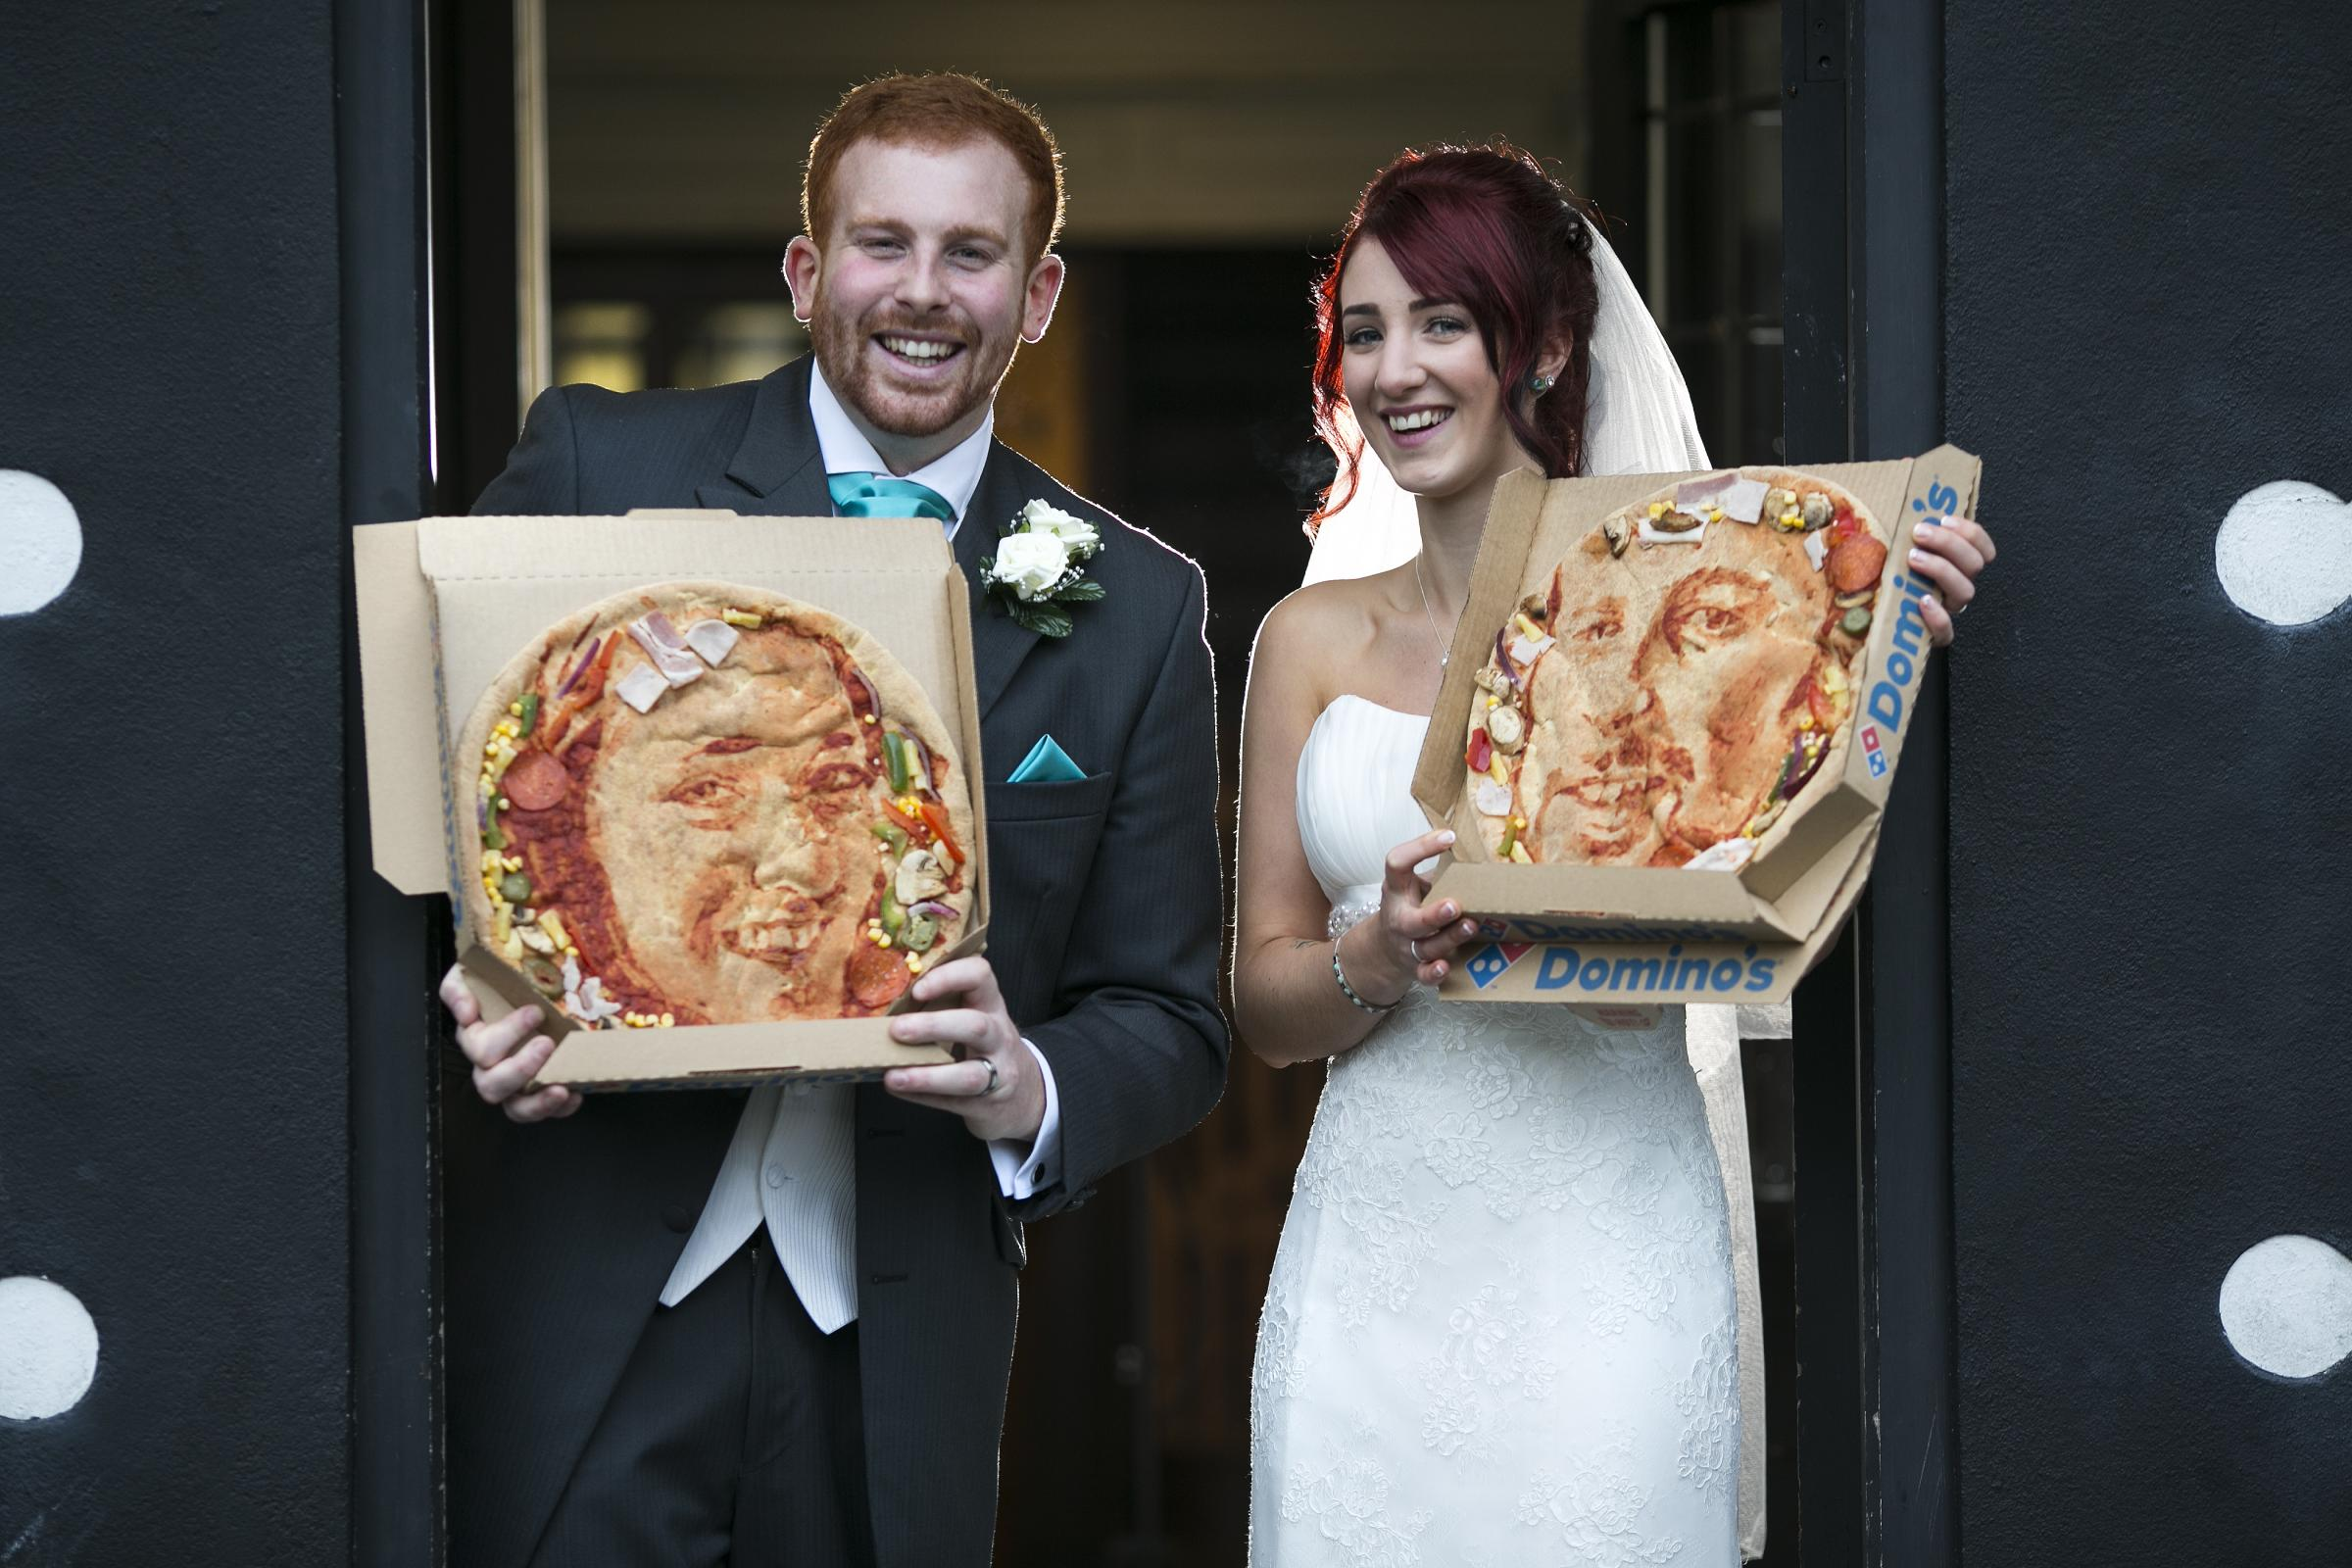 Newlyweds celebrate with pizza selfies